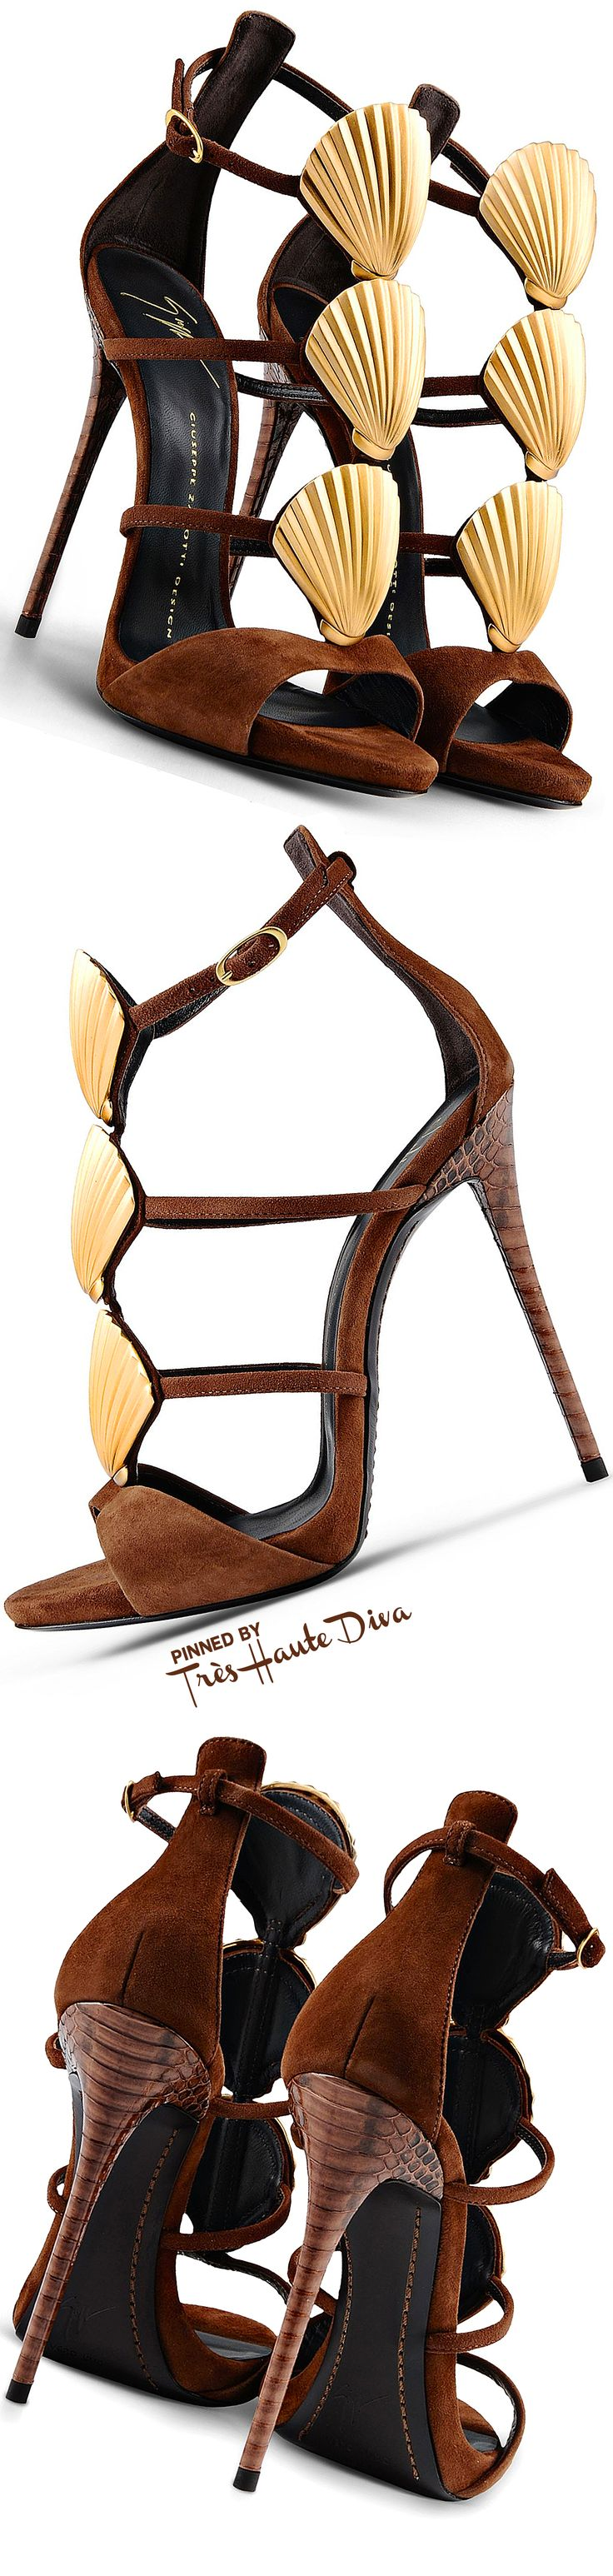 Giuseppe Zanotti Chestnut Suede Sandals With Gold Metal Shells and Precious Elaph Heels ♔Très Haute Diva♔